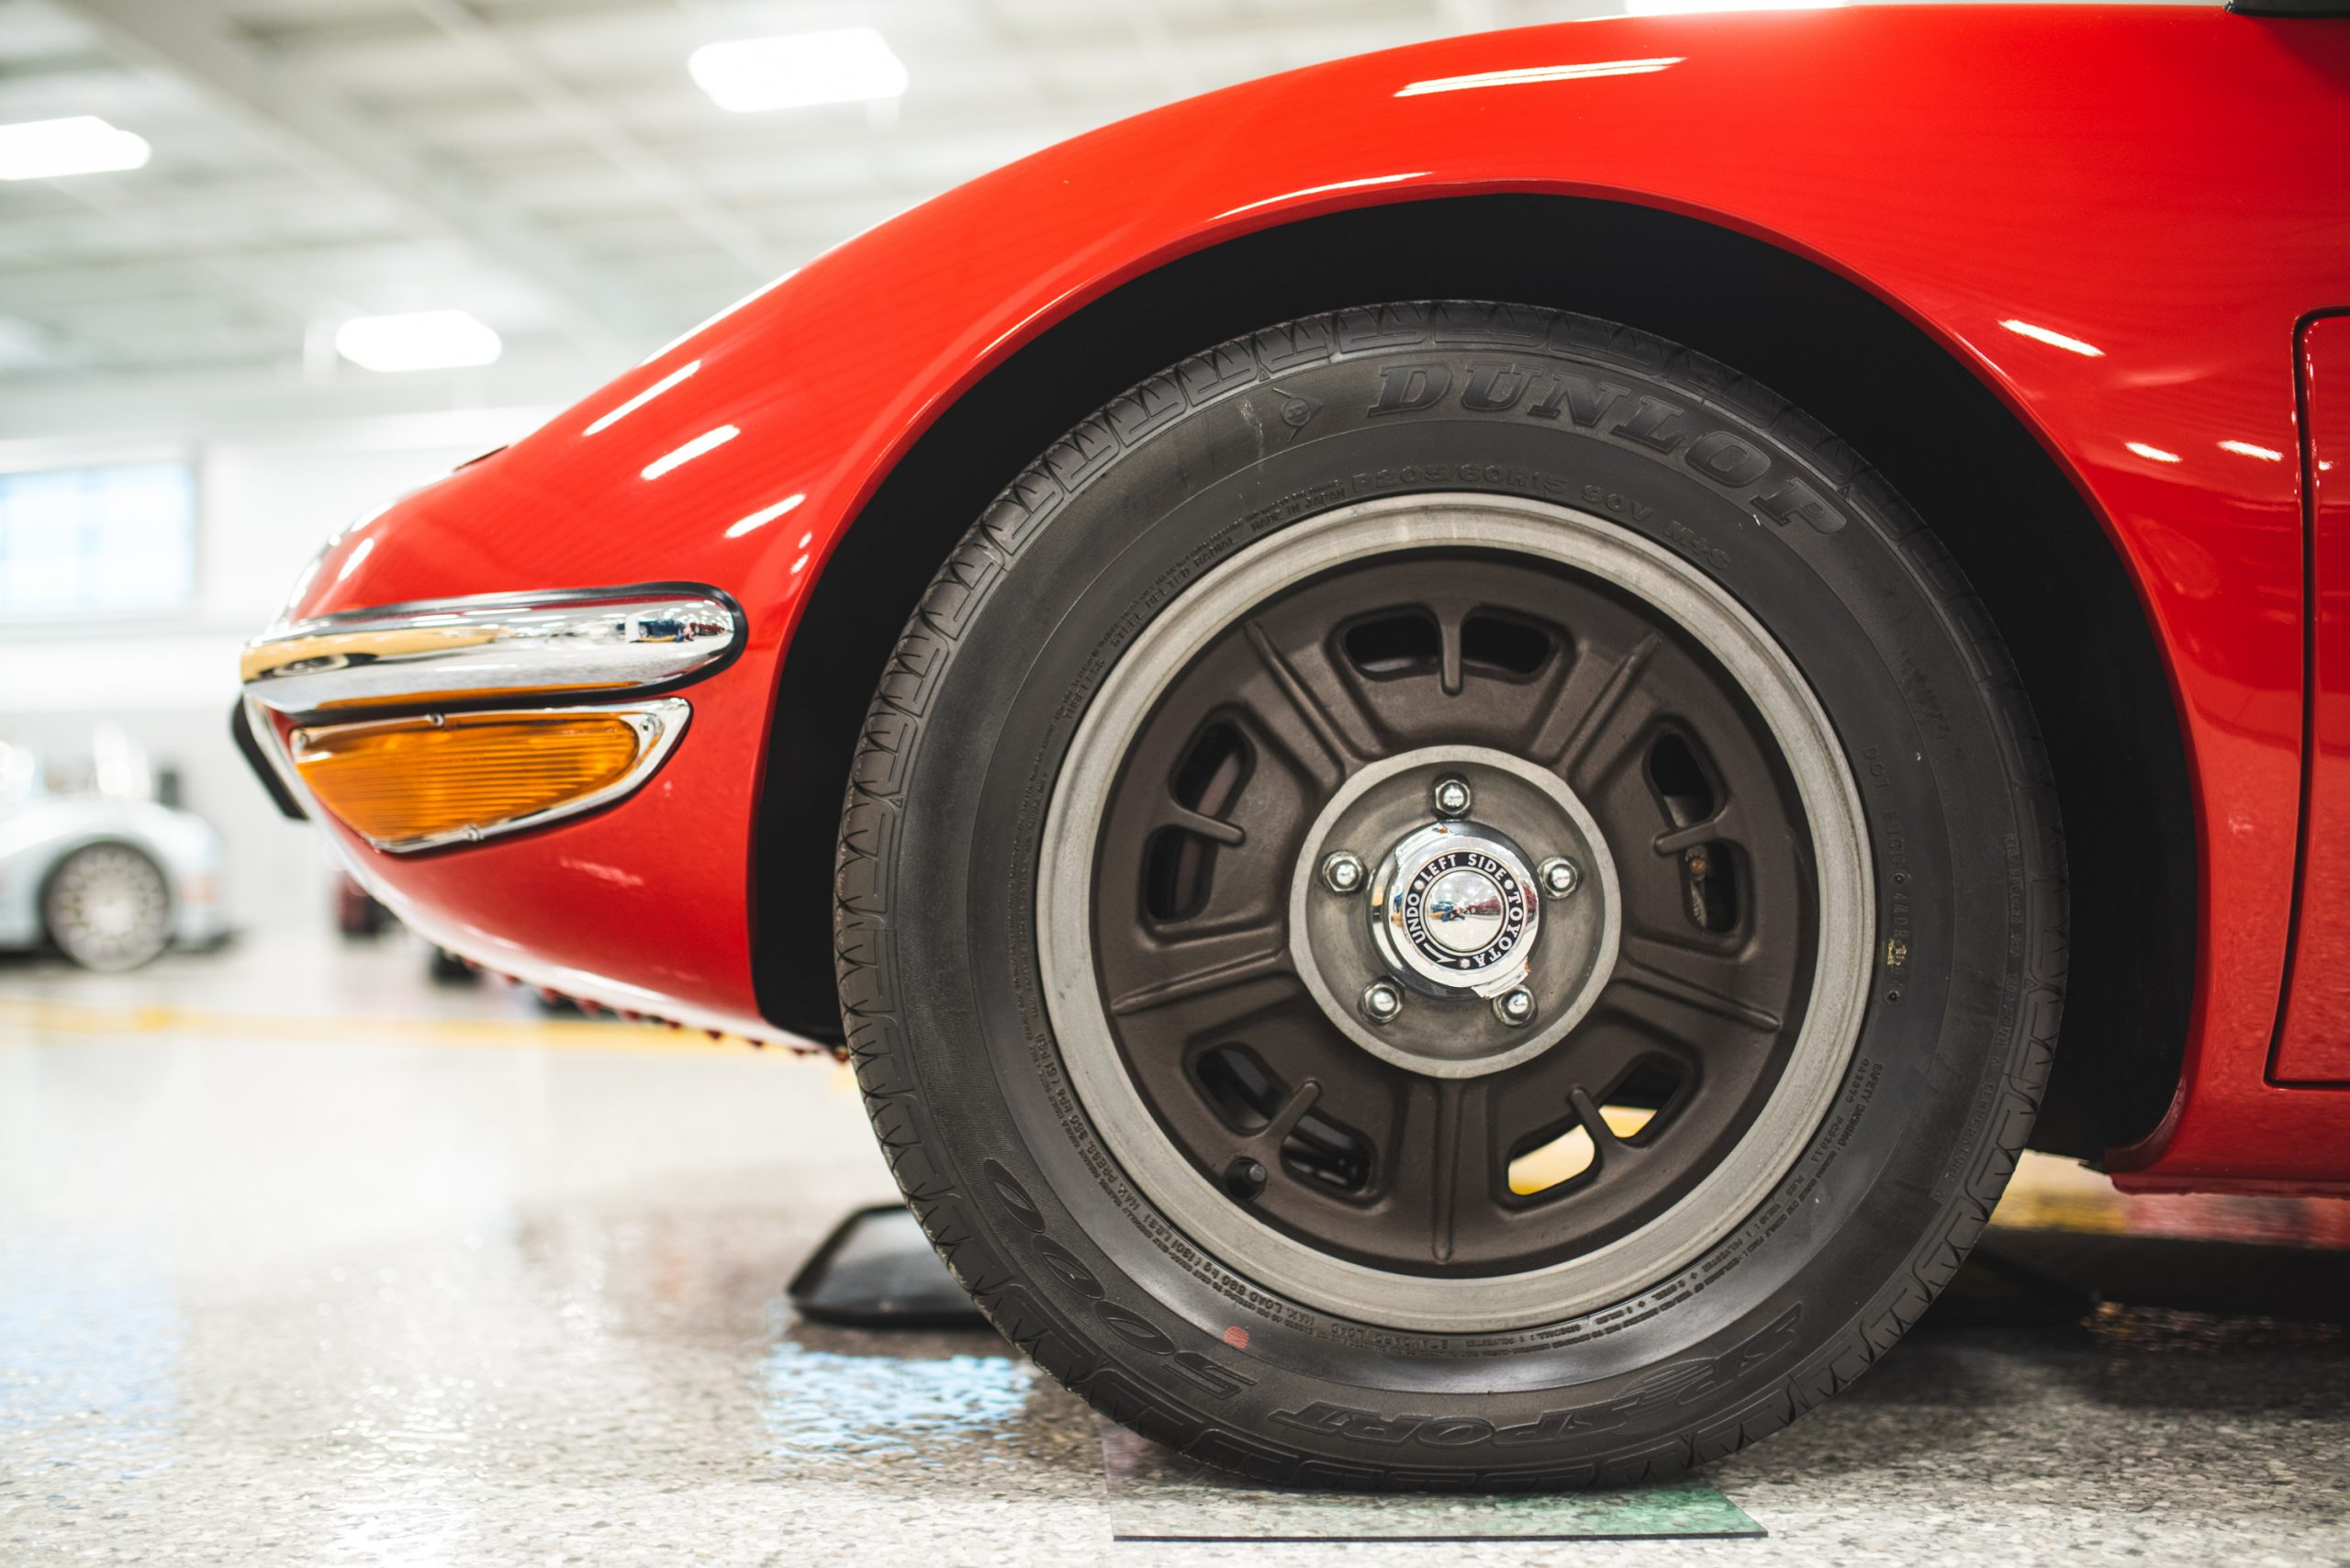 toyota 2000 gt wheel close up